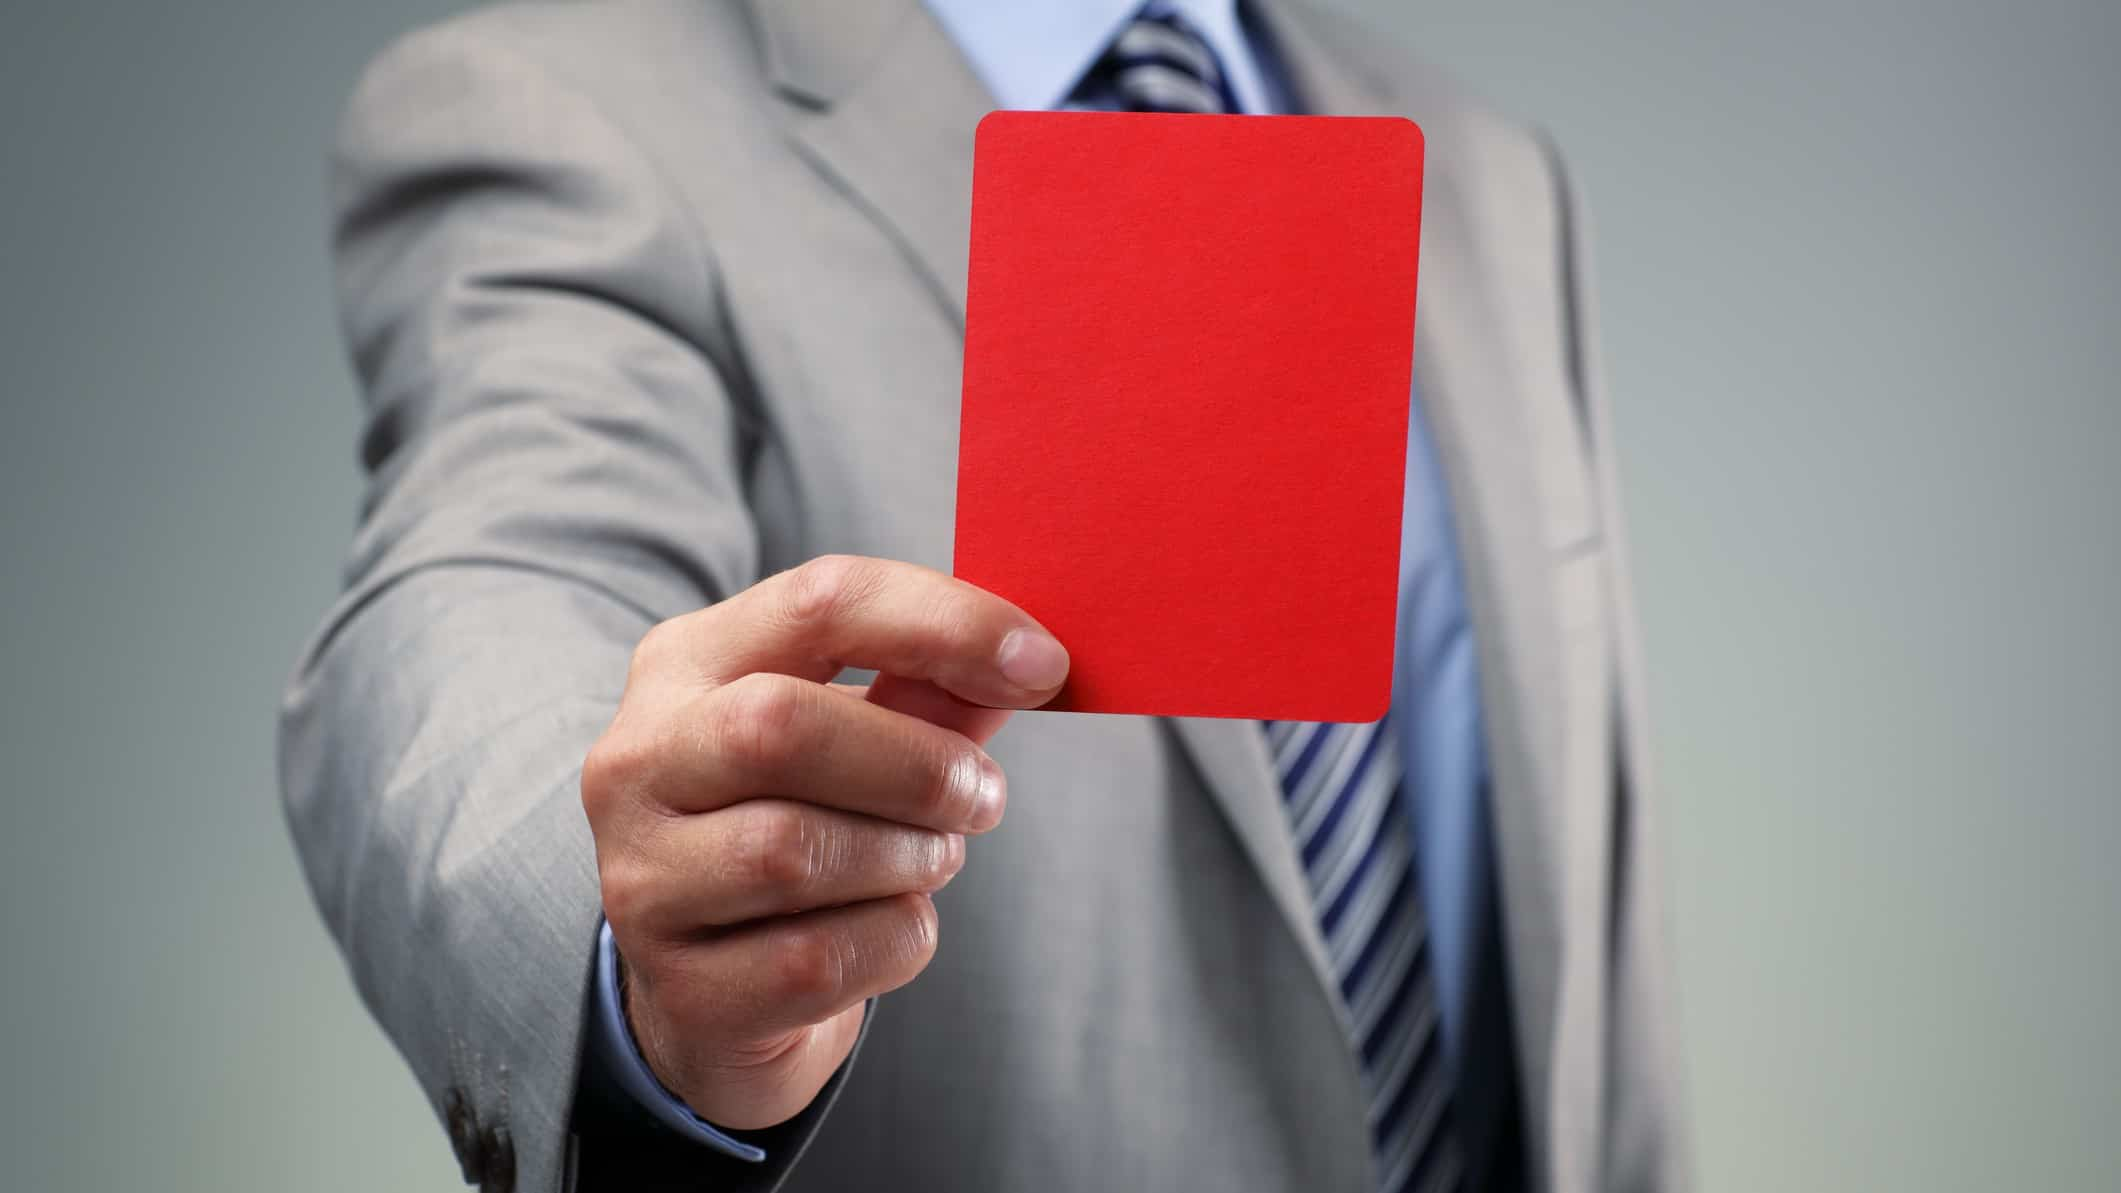 Man in business attire holding up red card to denote a fine